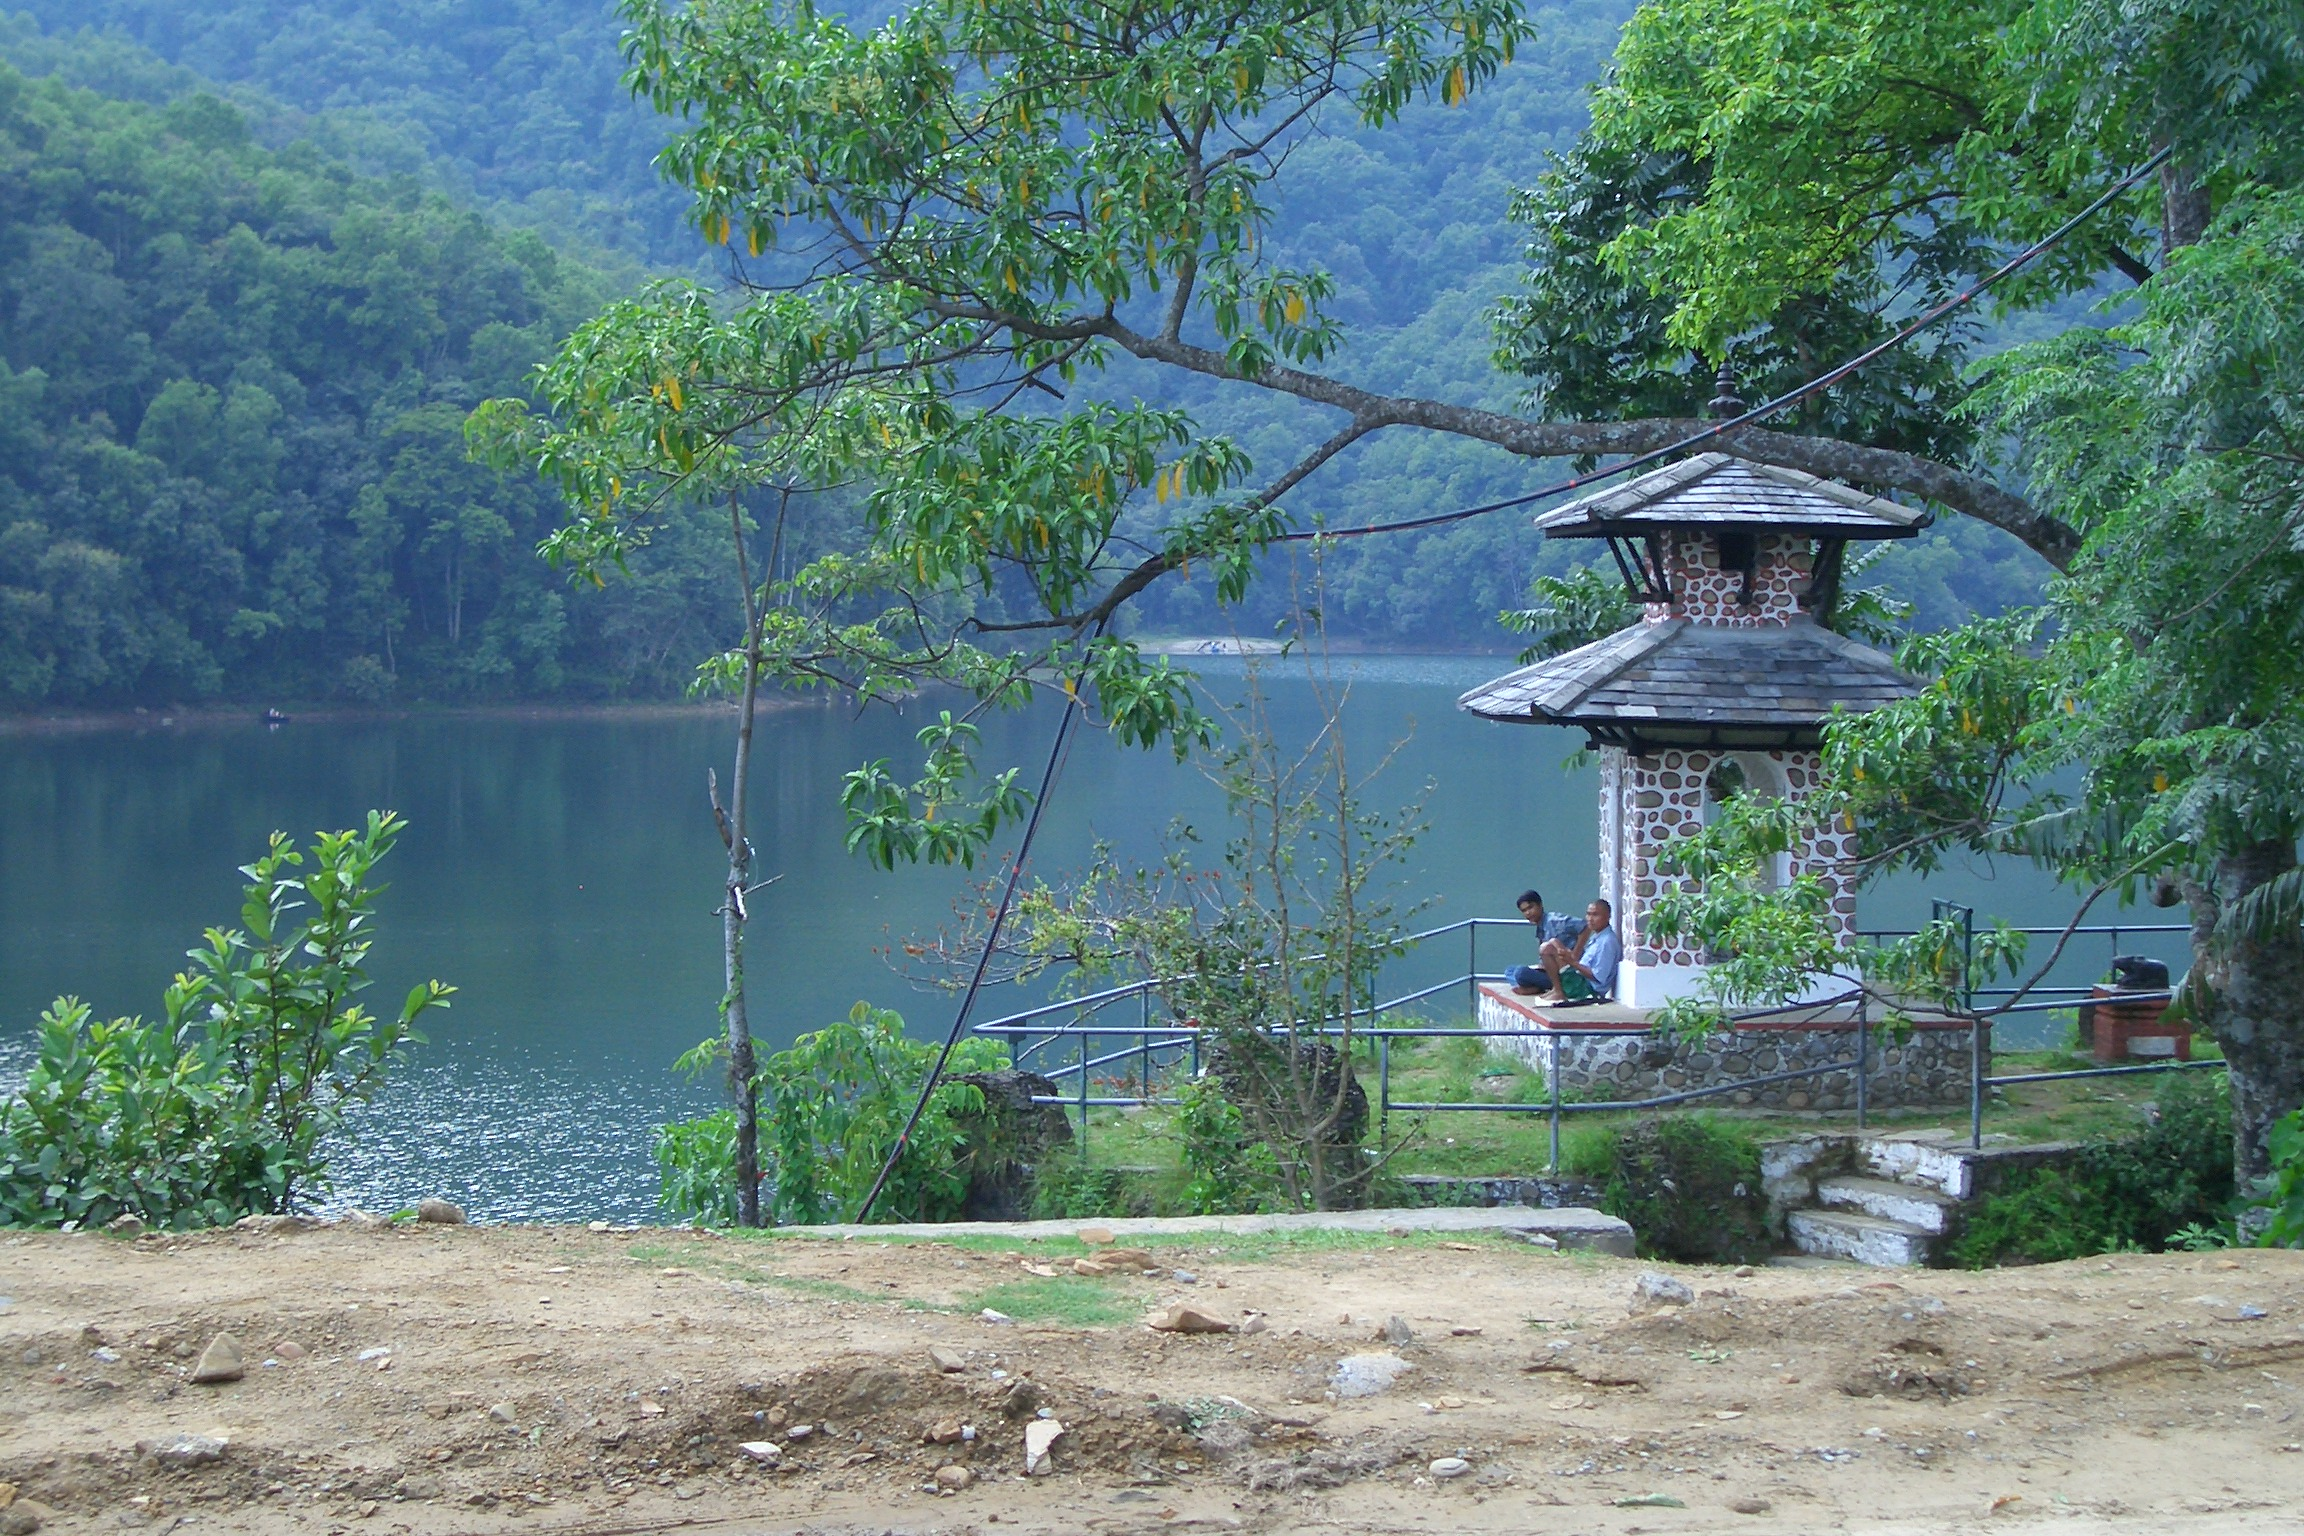 Relaxing by the lake in Pokhara